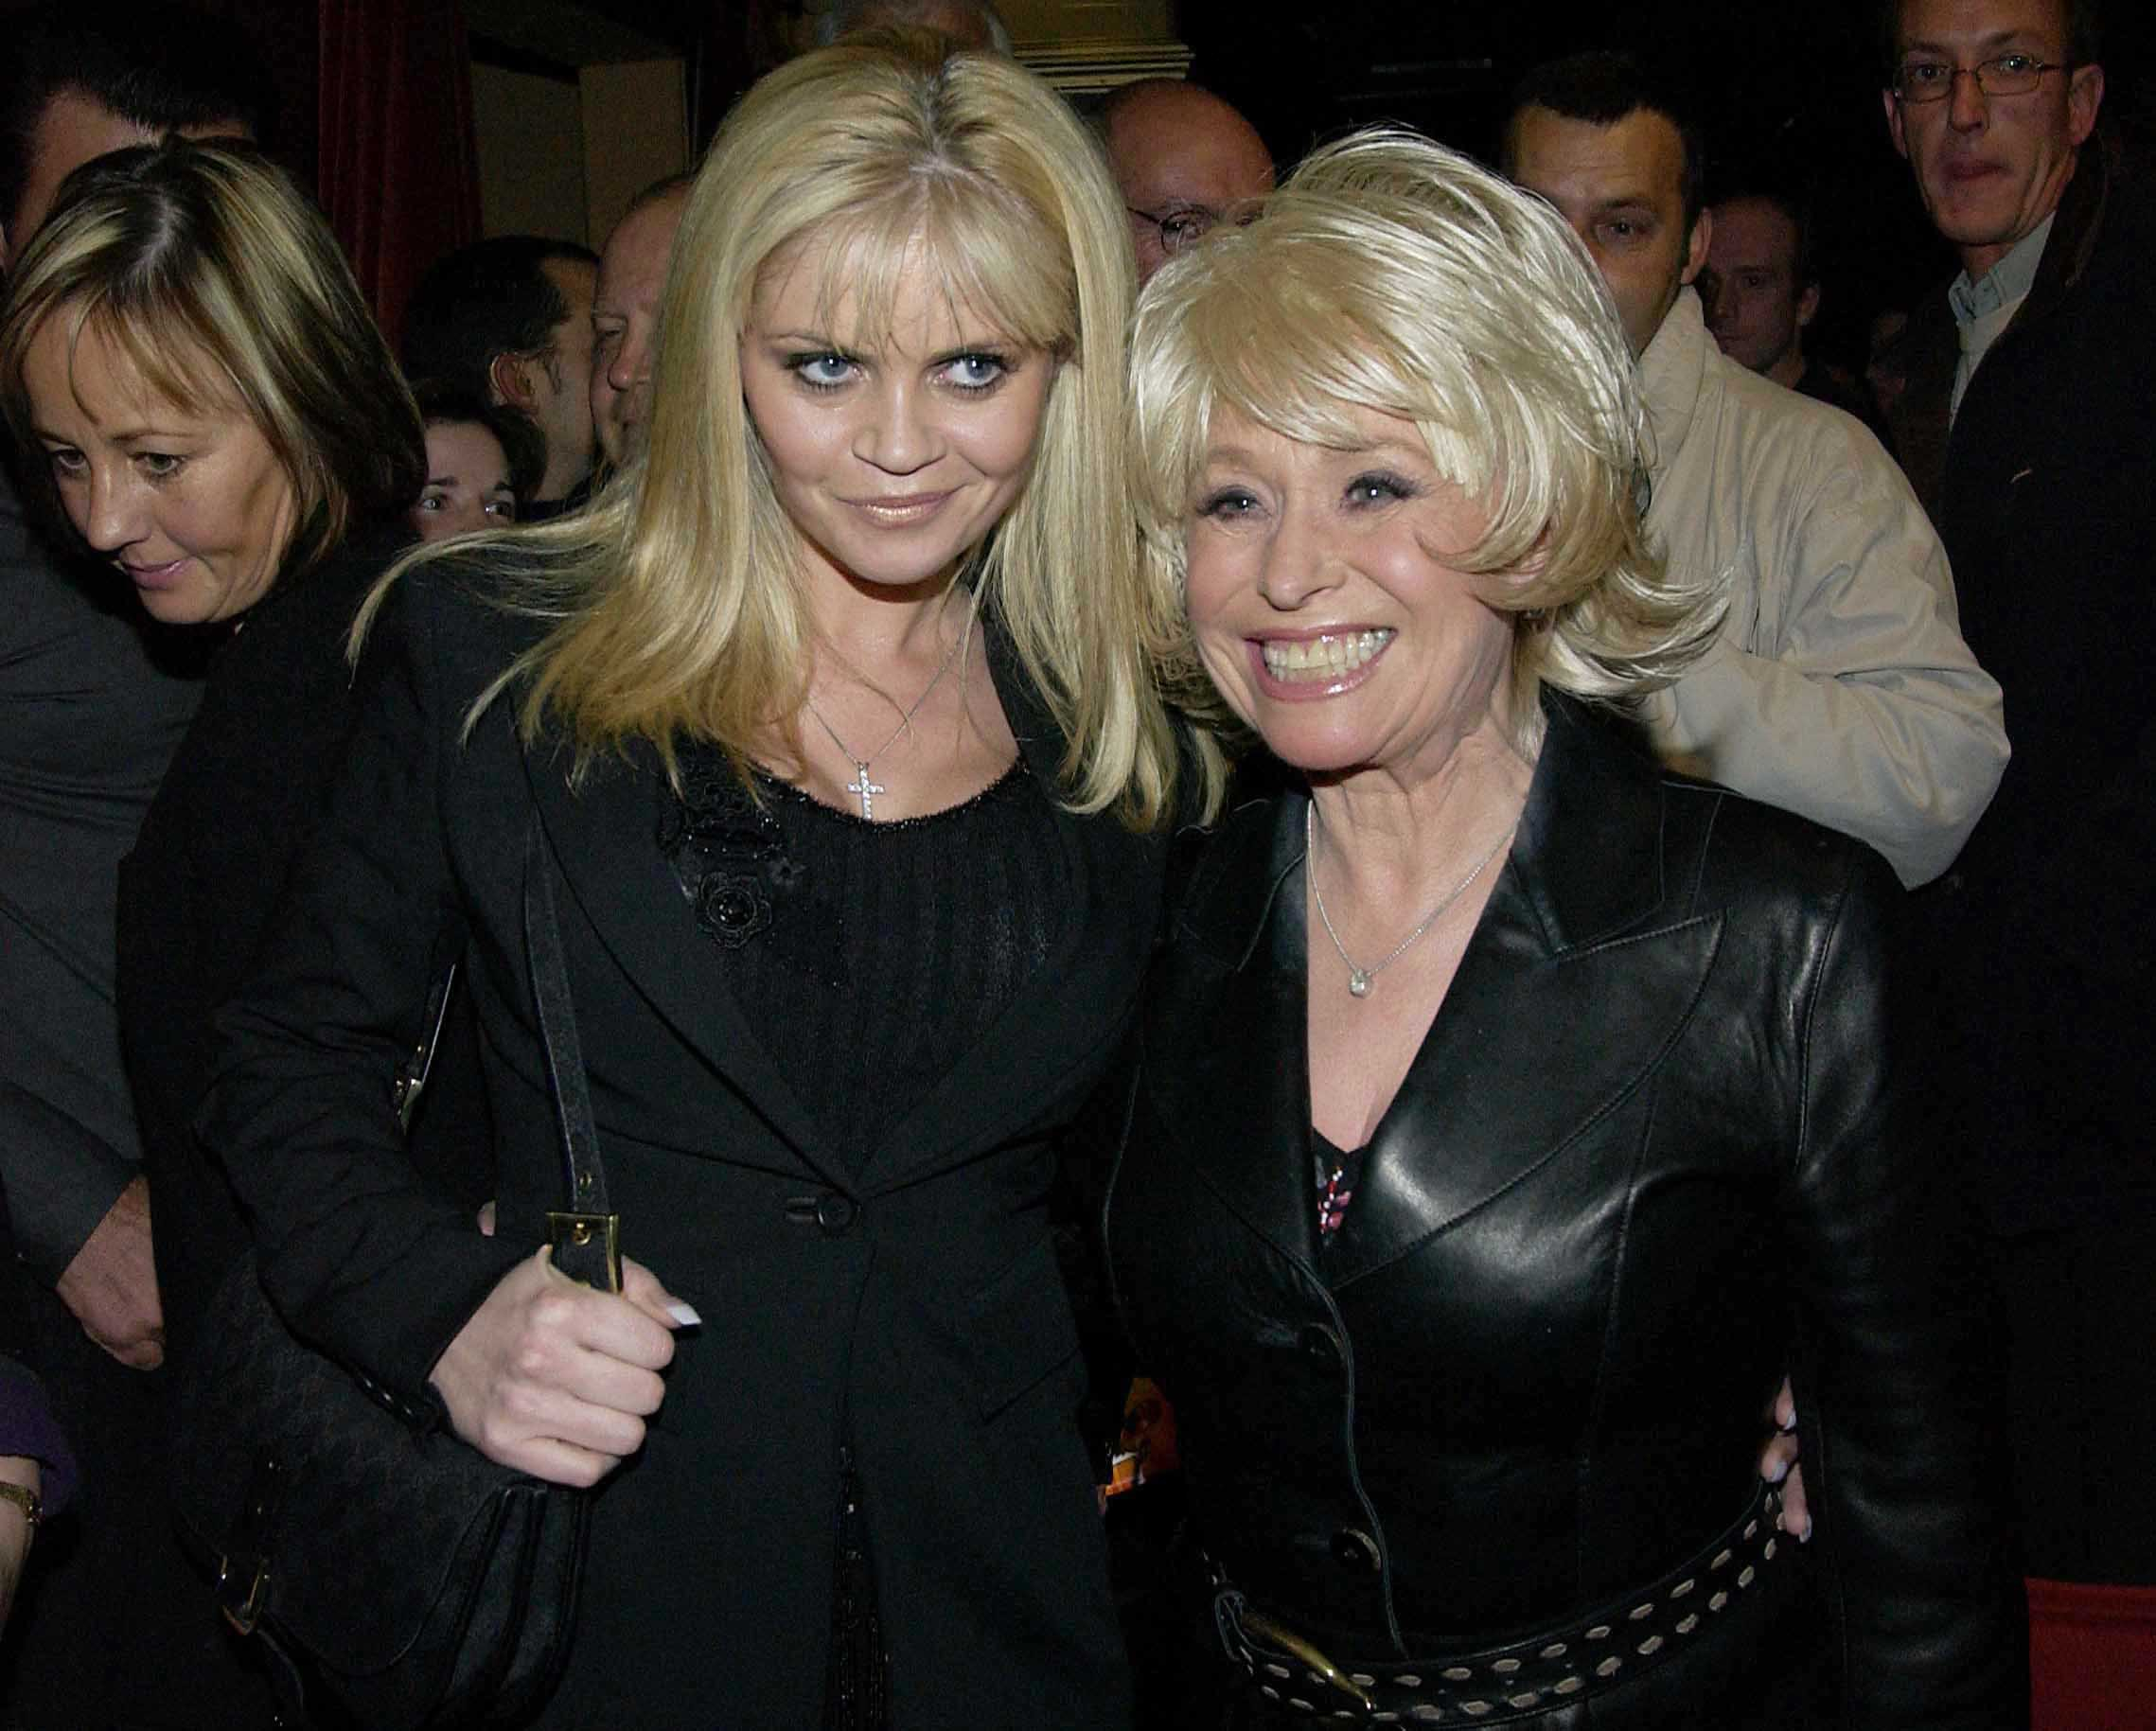 Mandatory Credit: Photo by Alan Davidson/Silverhub/REX/Shutterstock (9190555m) Danniella Westbrook and Barbara Windsor Chicago 5th Anniversary and cast change at The Adelphi Theatre and party at Navajo Joe on 19 Nov 2002